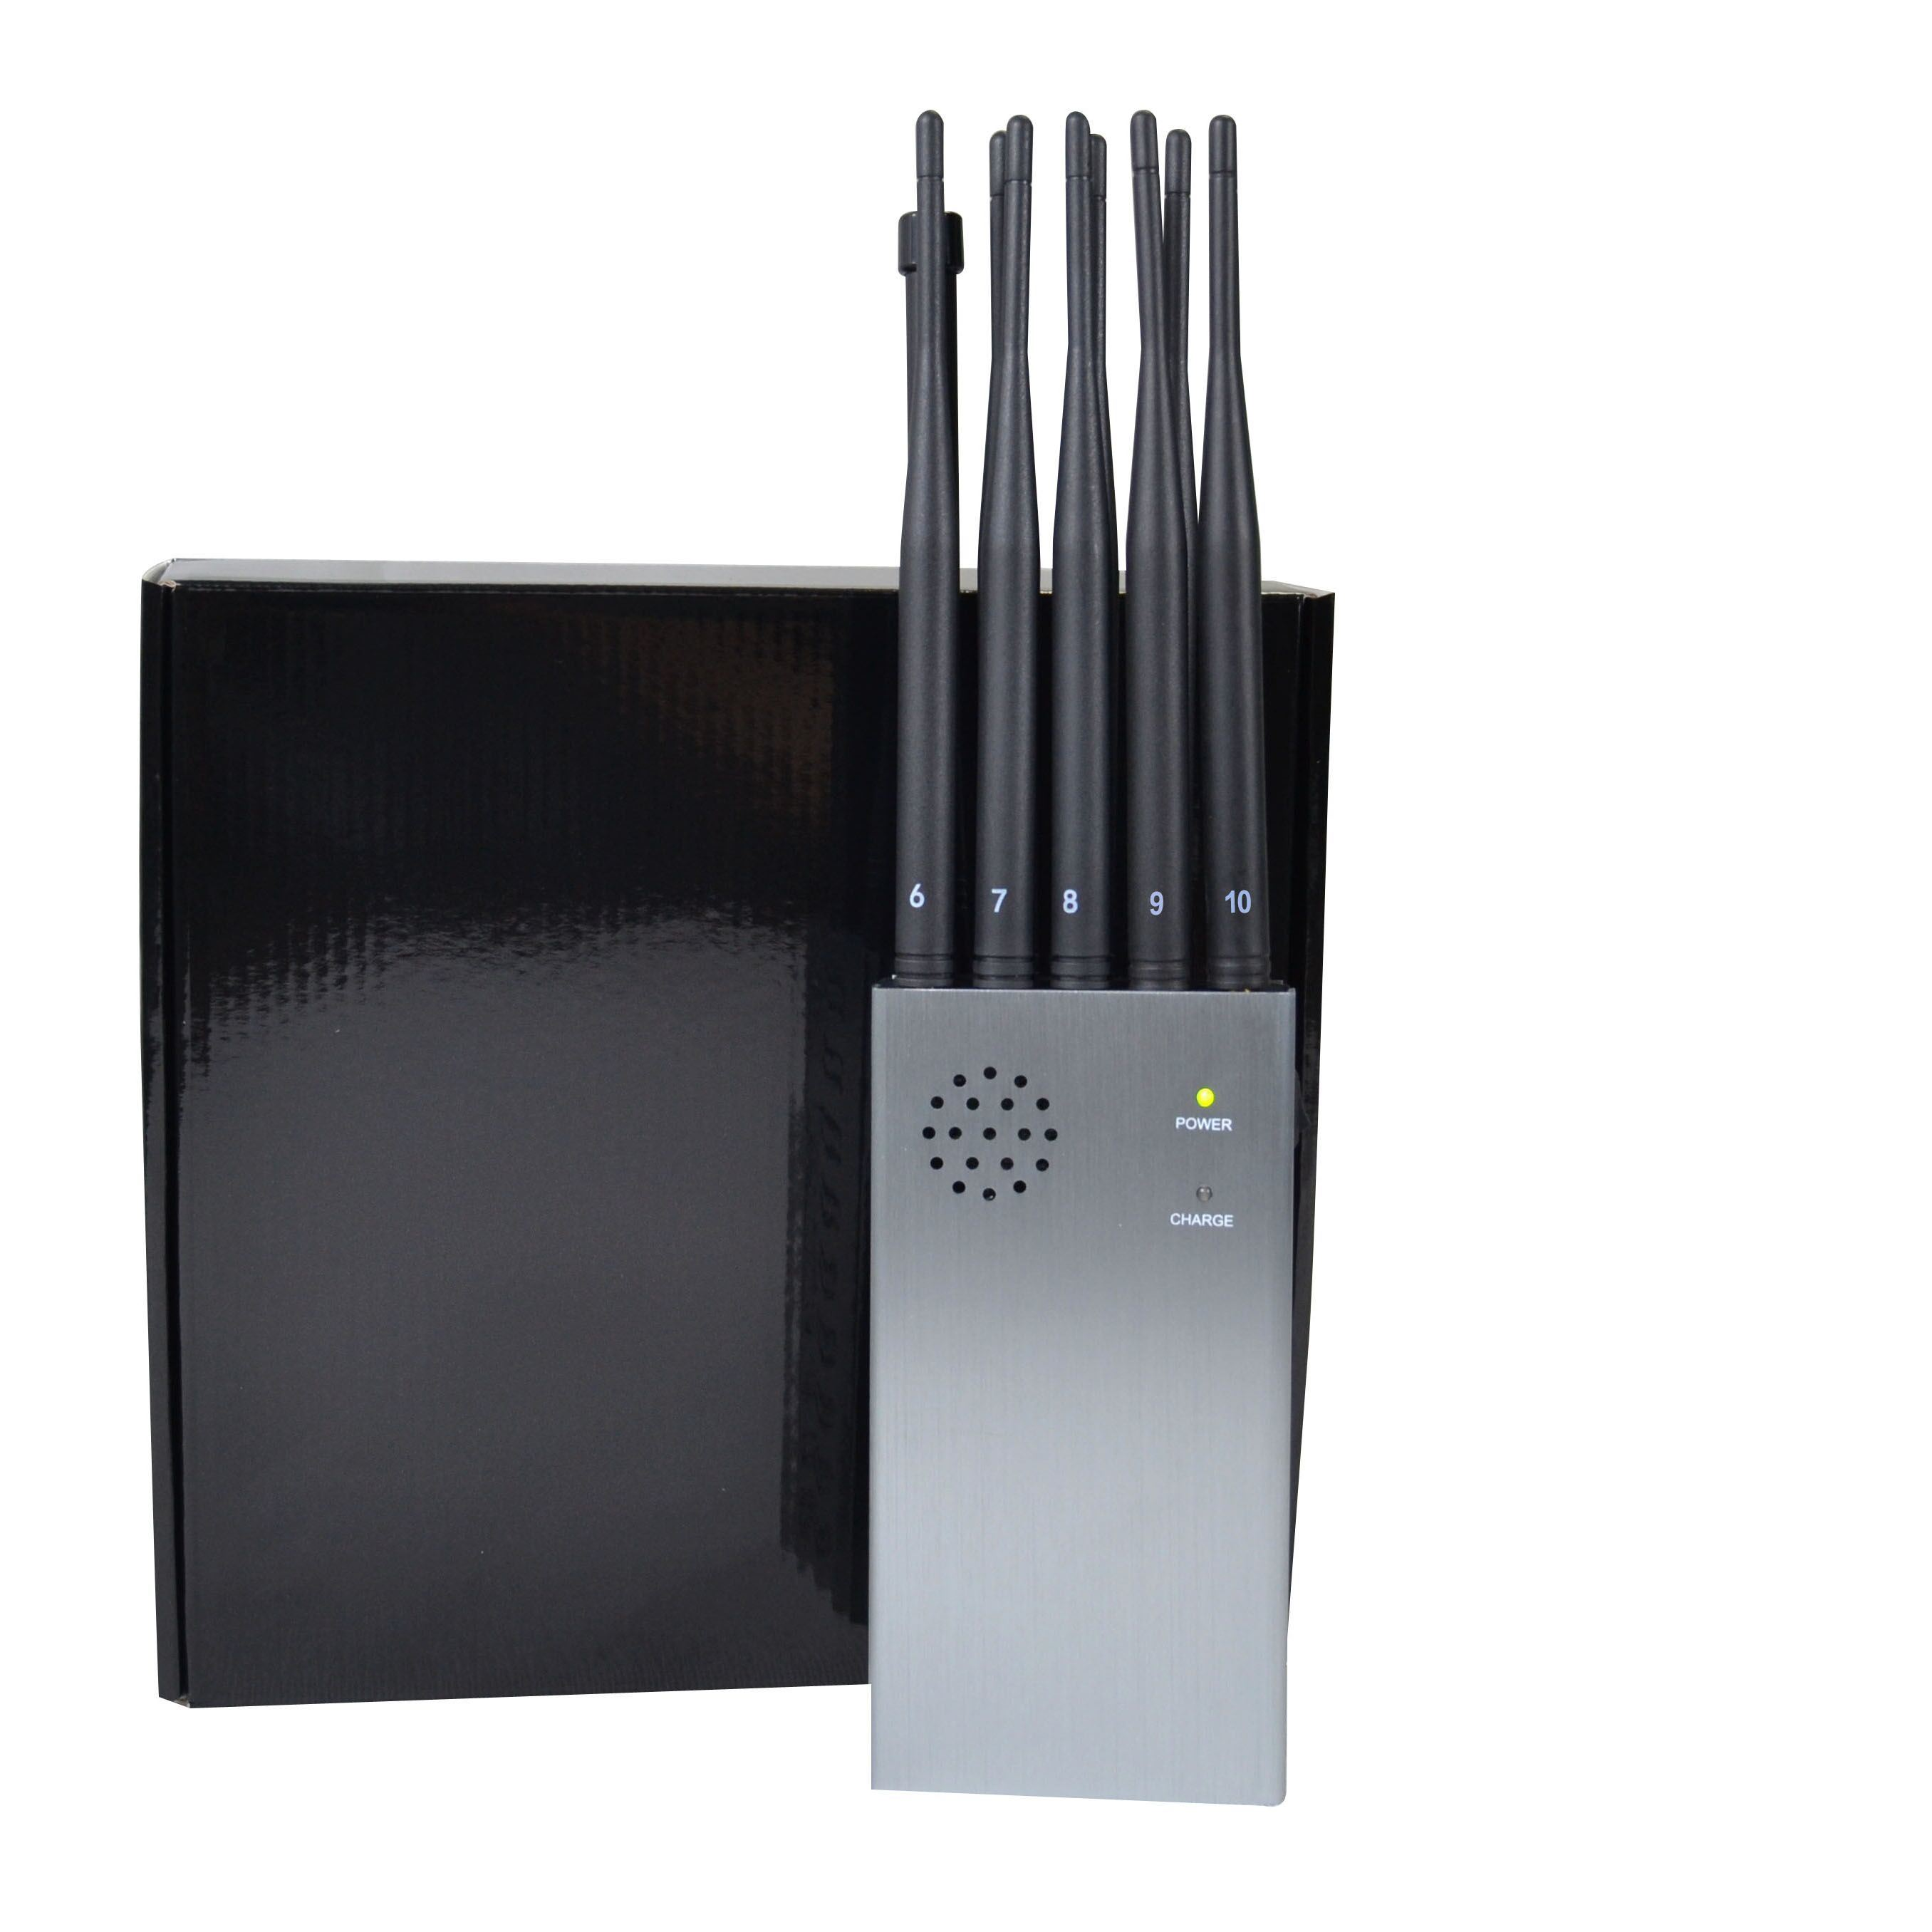 homemade phone jammer raspberry pi - China High Power up to 8000mA Battery Portable Jammer for Military Using Including Lojack, 3G 4G 2g 5g Remote Control GPS Signals - China 8000mA Battery Jammer, Large Volume Power Signal Blocker